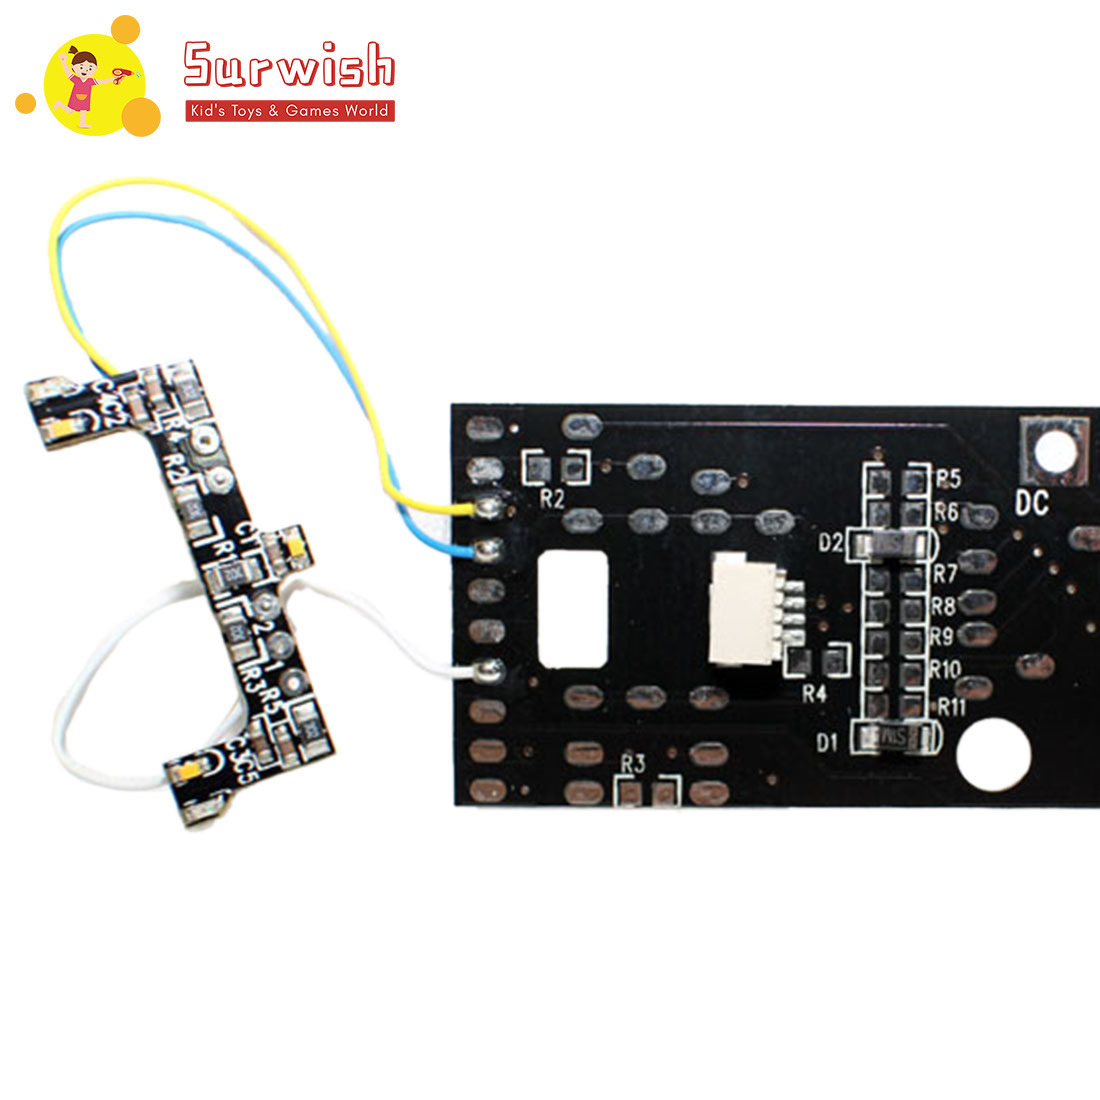 HO 1:87 Scale Train Model PCB Circuit Board With Bulb Light Sound For Sand Table